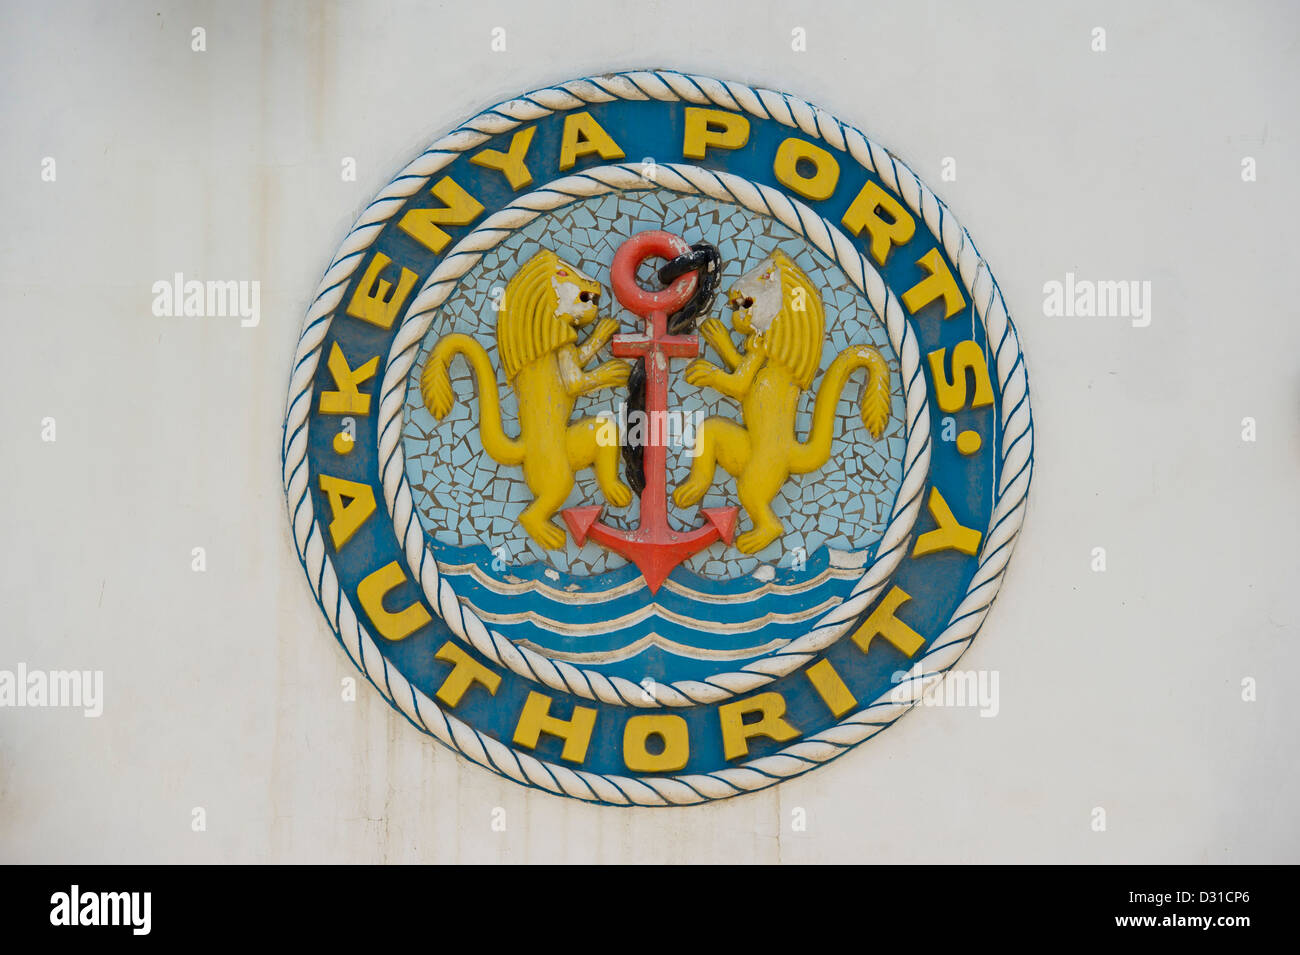 Mural of the Kenya Ports Authority, Lamu, Lamu Archipelago, Kenya - Stock Image